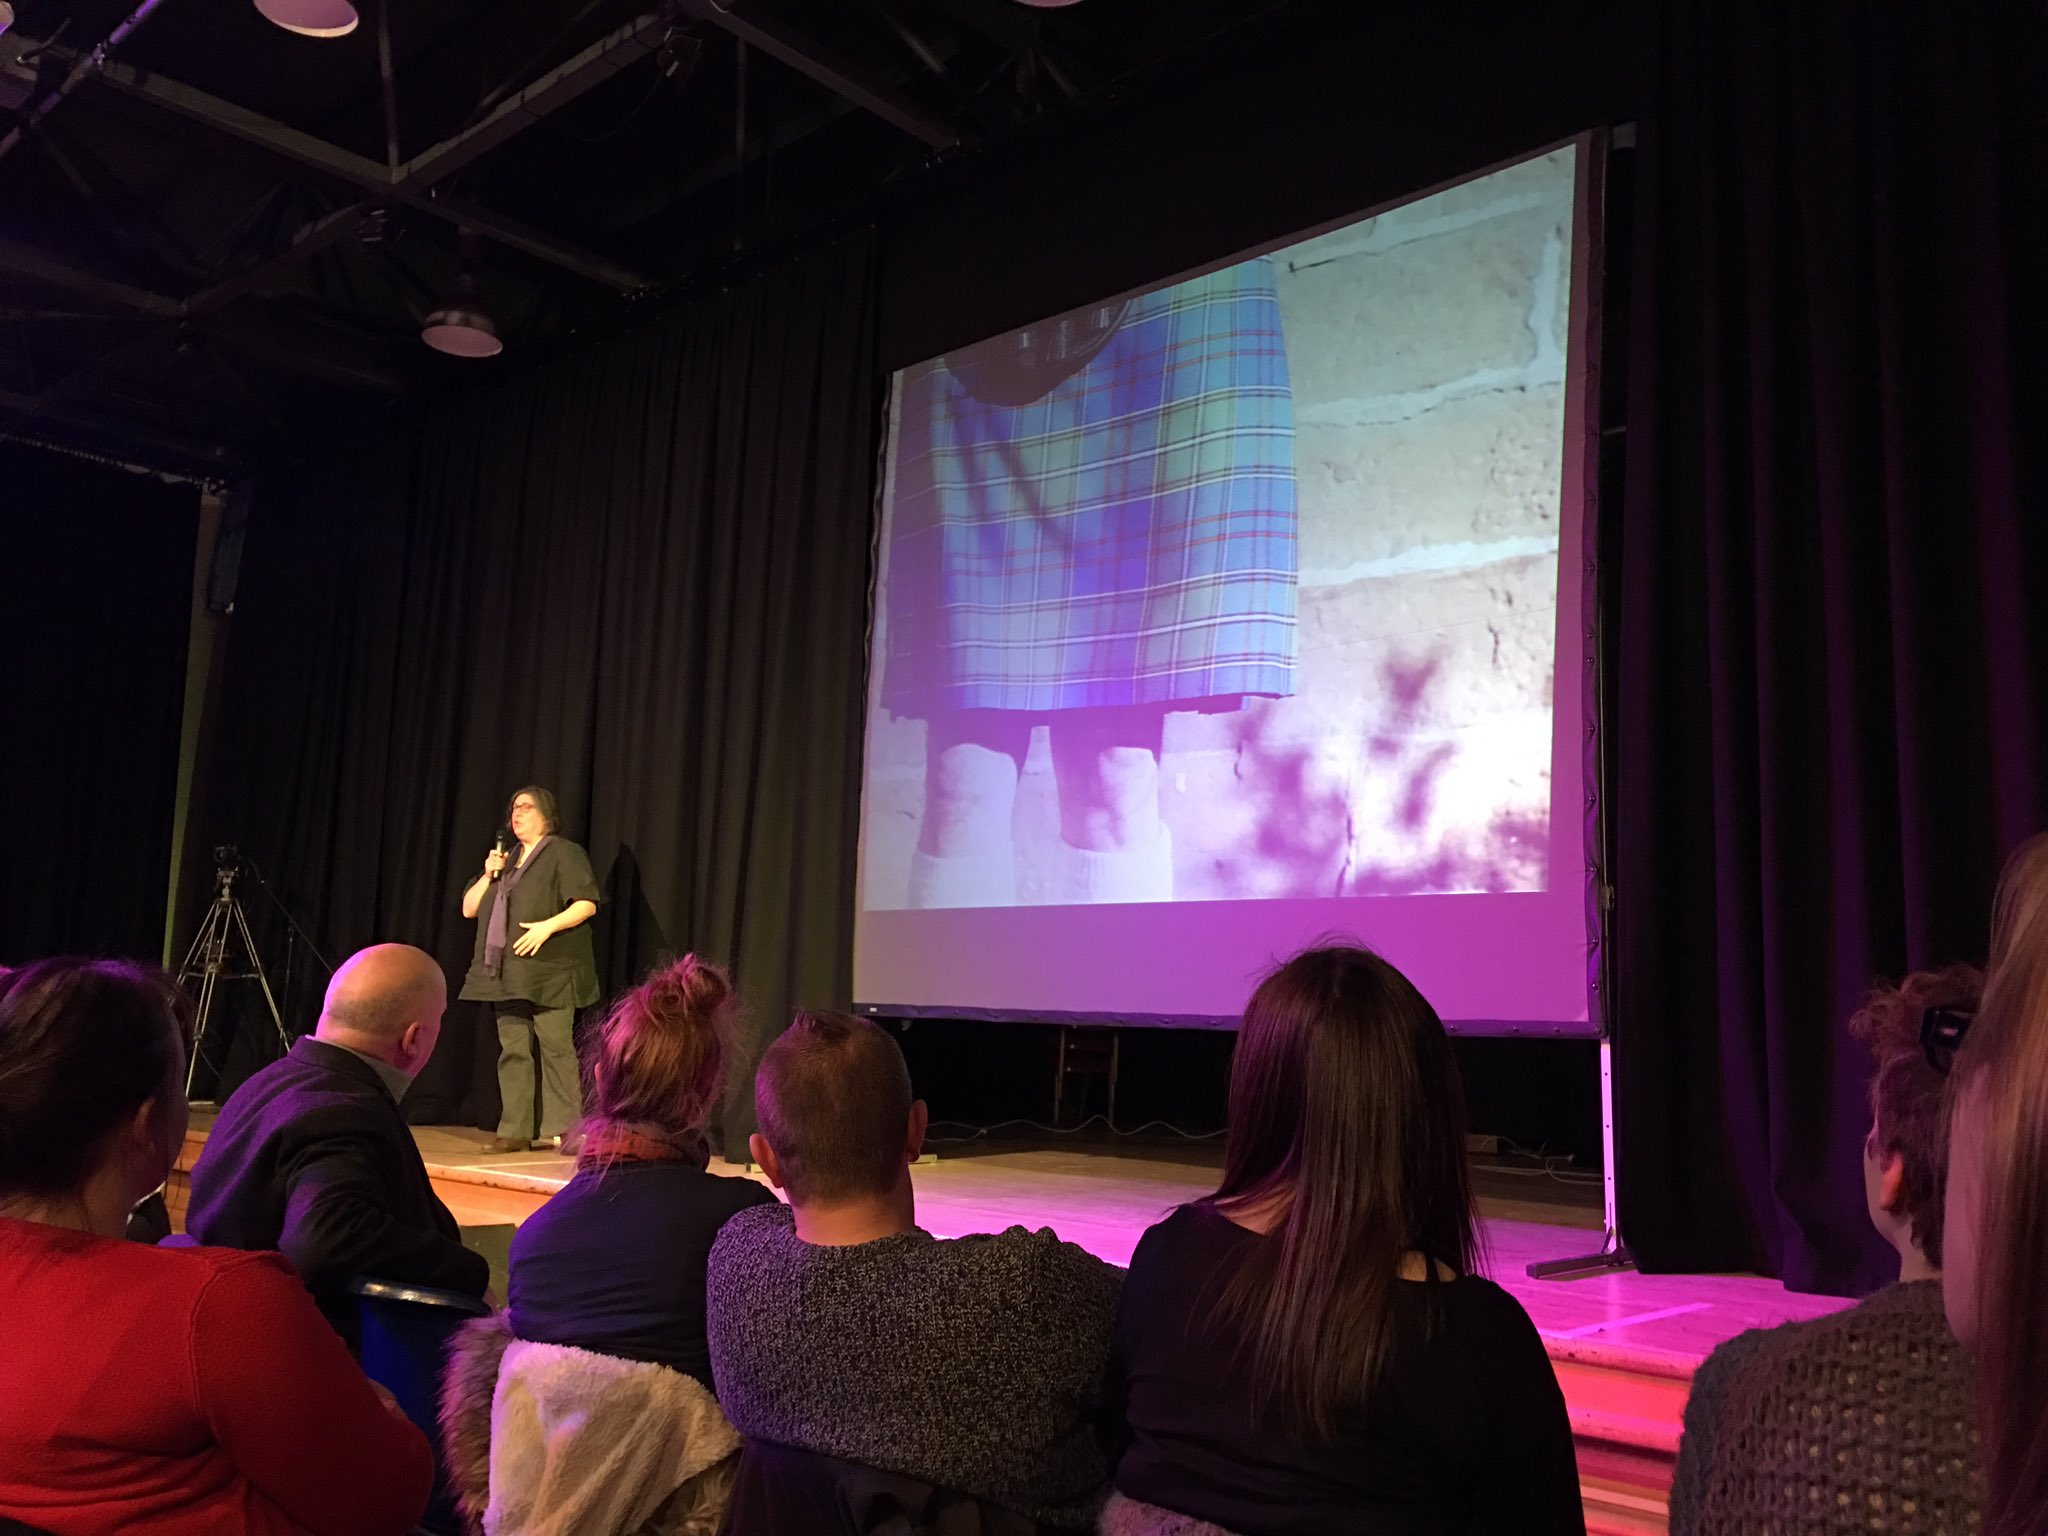 Research & innovate with textiles #PKN_DND Use different materials, techniques (including origami) & the high tech tech hacks with bottles https://t.co/gQ41jWiRXo